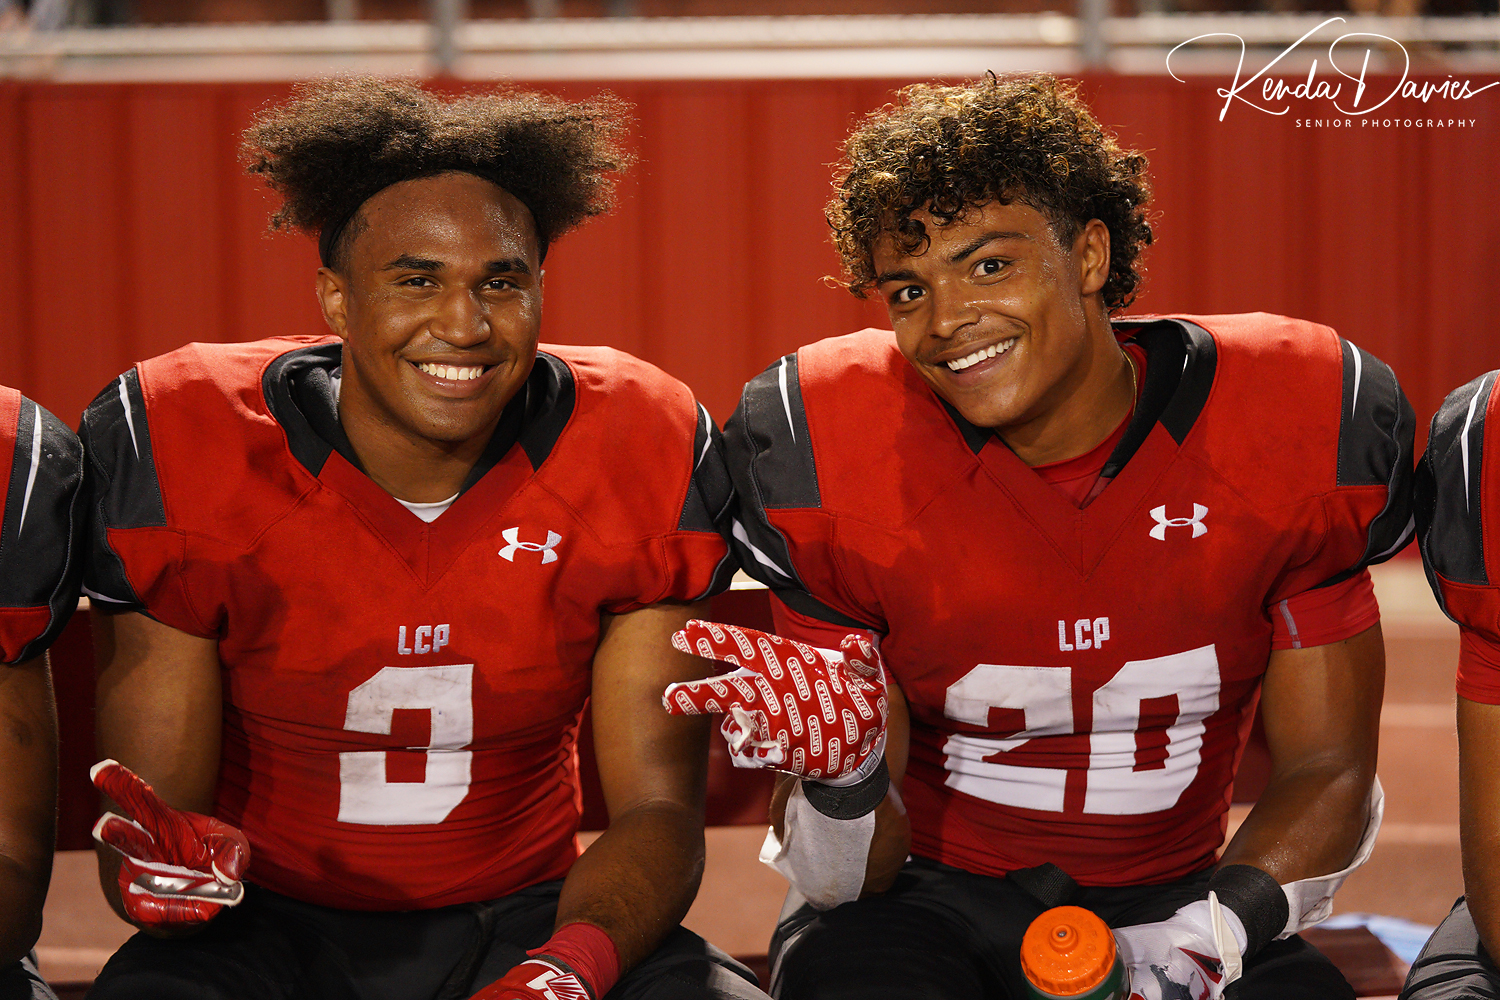 These two running backs are all smiles after contributing in a big way to a 45-20 win over the Andrews Mustangs.